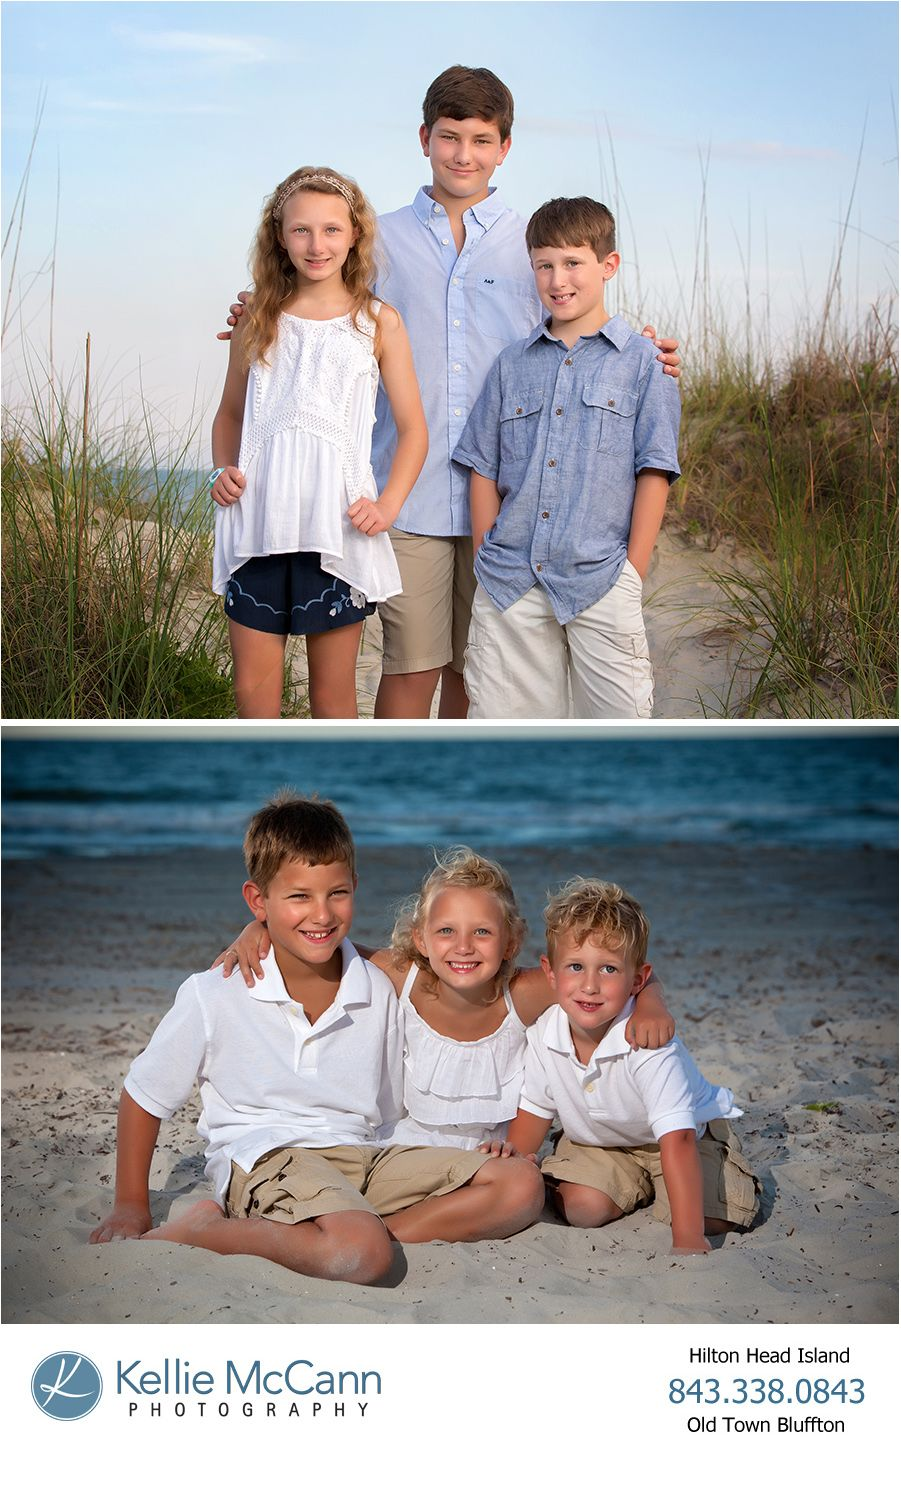 Fisher Children 2016 2010 Hilton Head Photographer Kellie Mccann Photography Specializes In Family